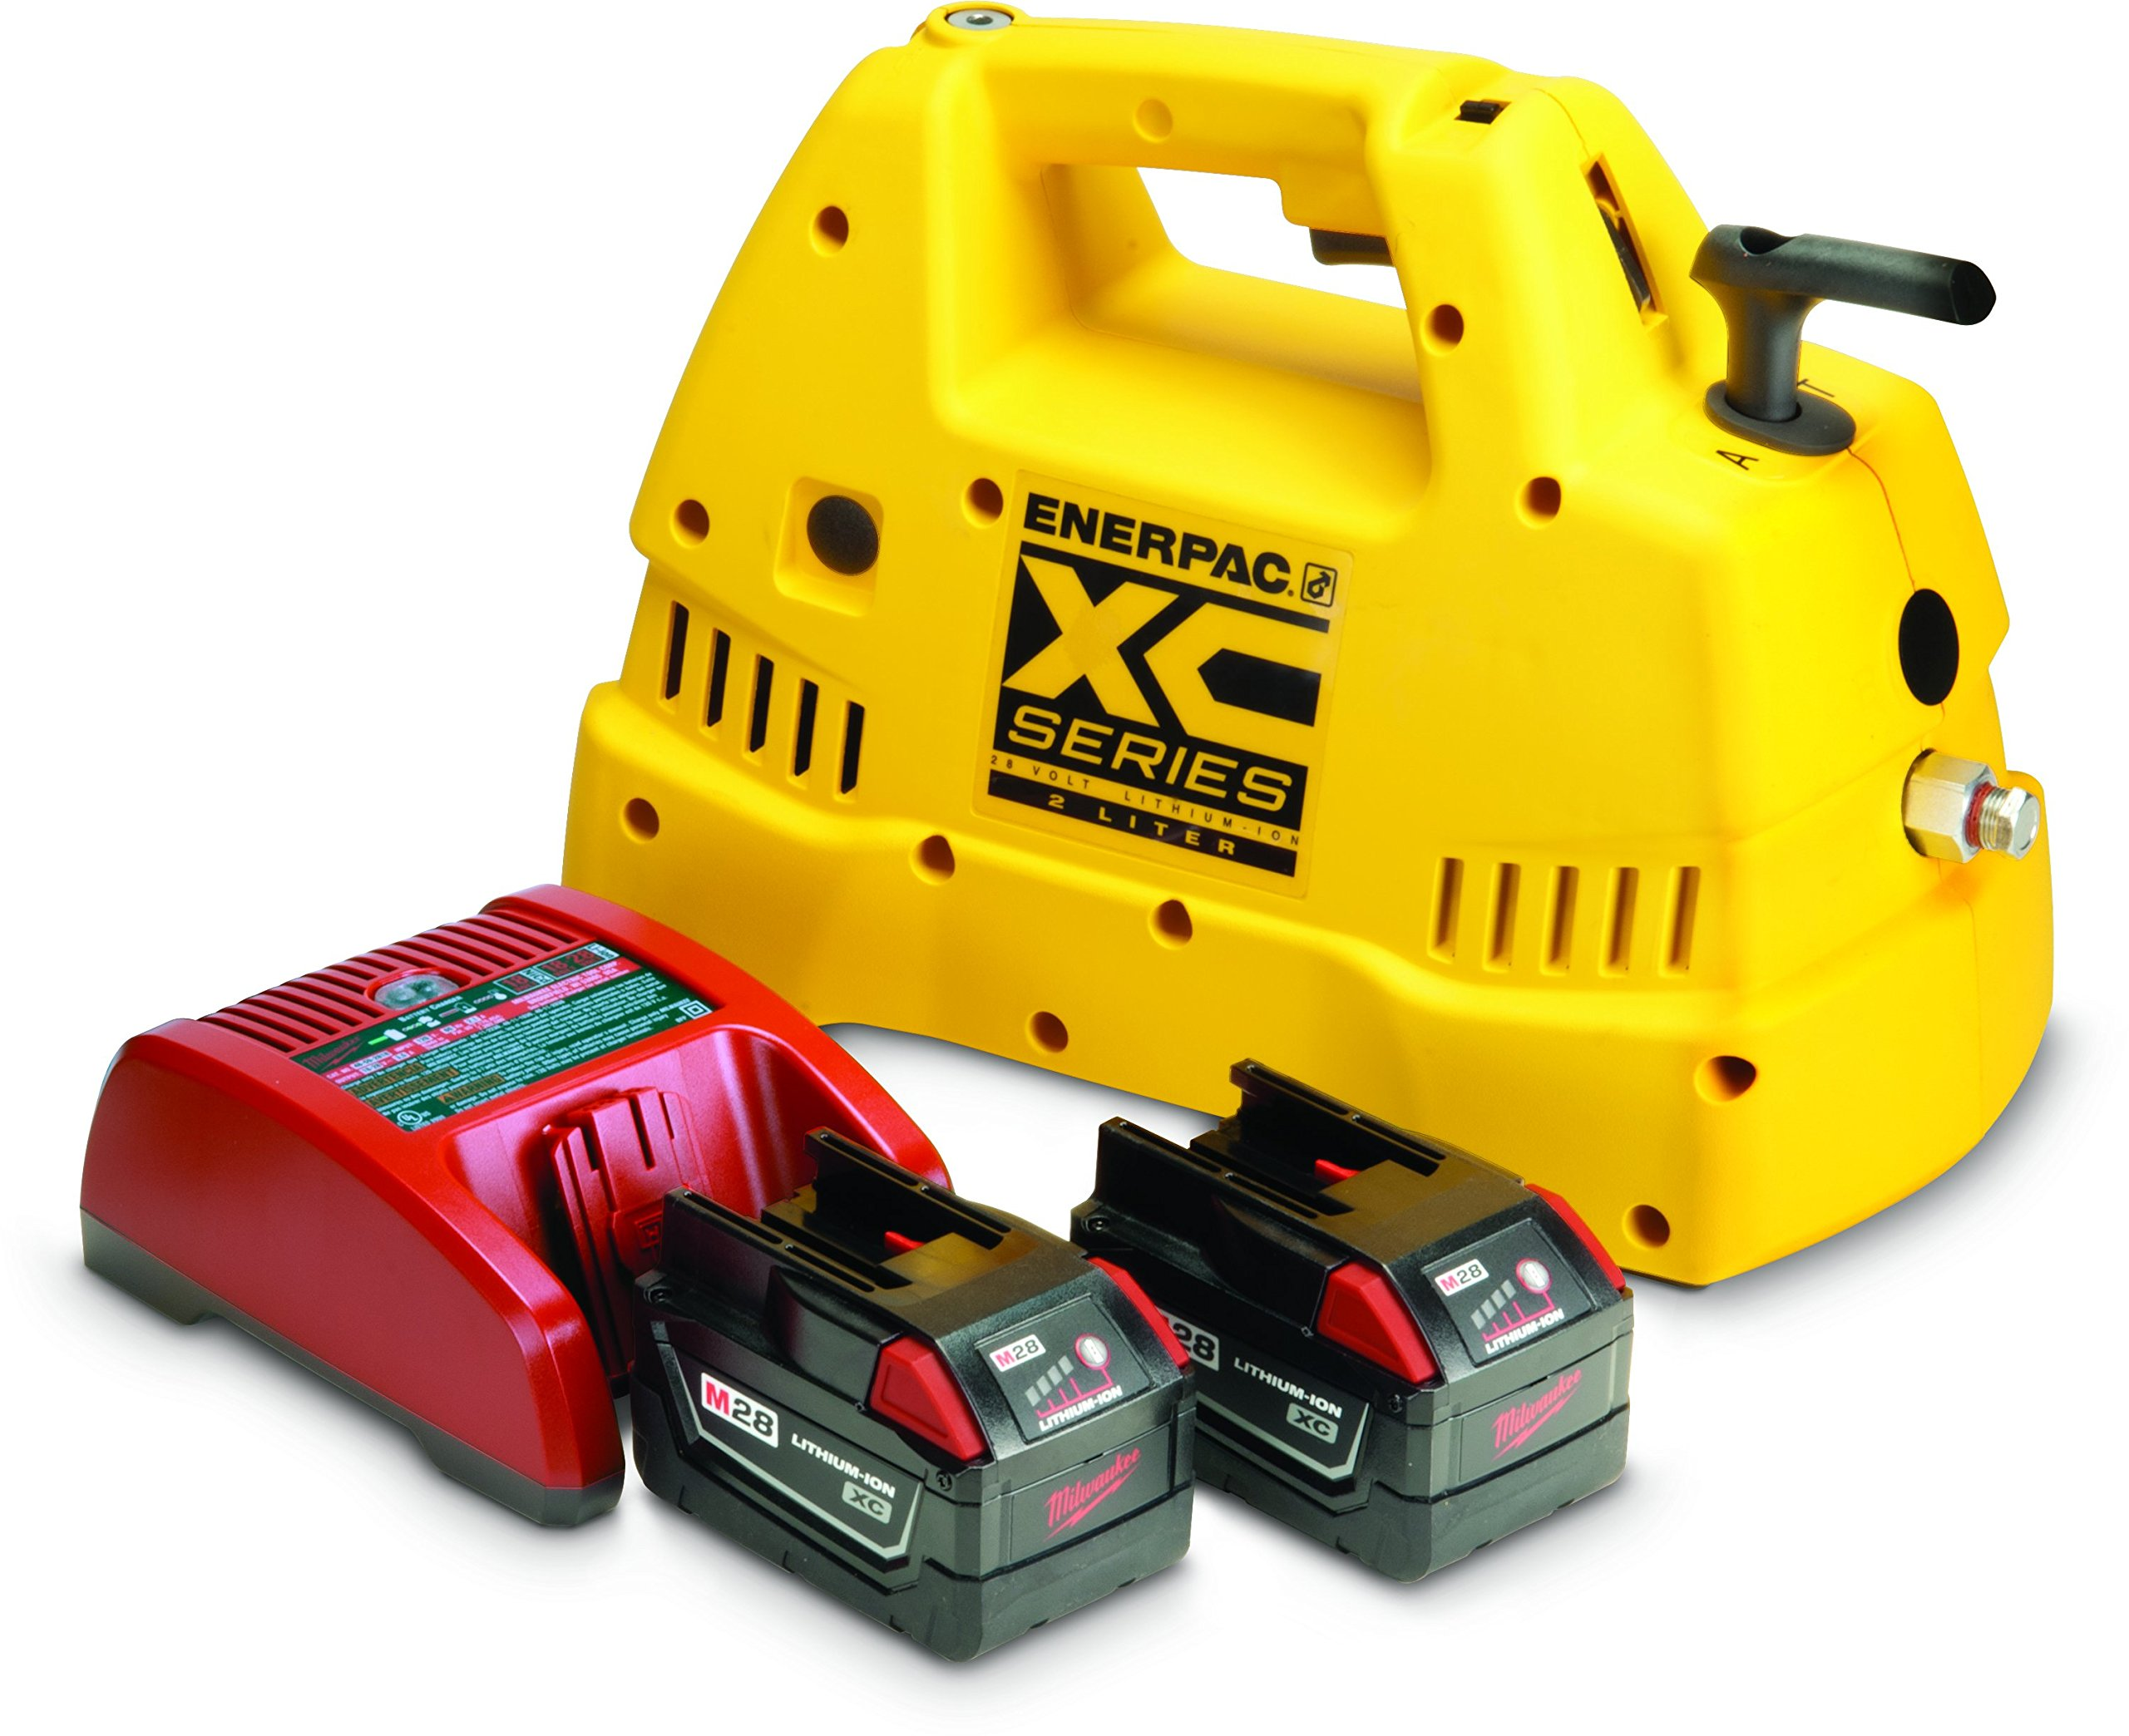 Enerpac XC1202MB Cordless Hydraulic Pump, Single Acting Valve, 2.07 quart Oil Capacity, Battery and Charger Included, Yellow